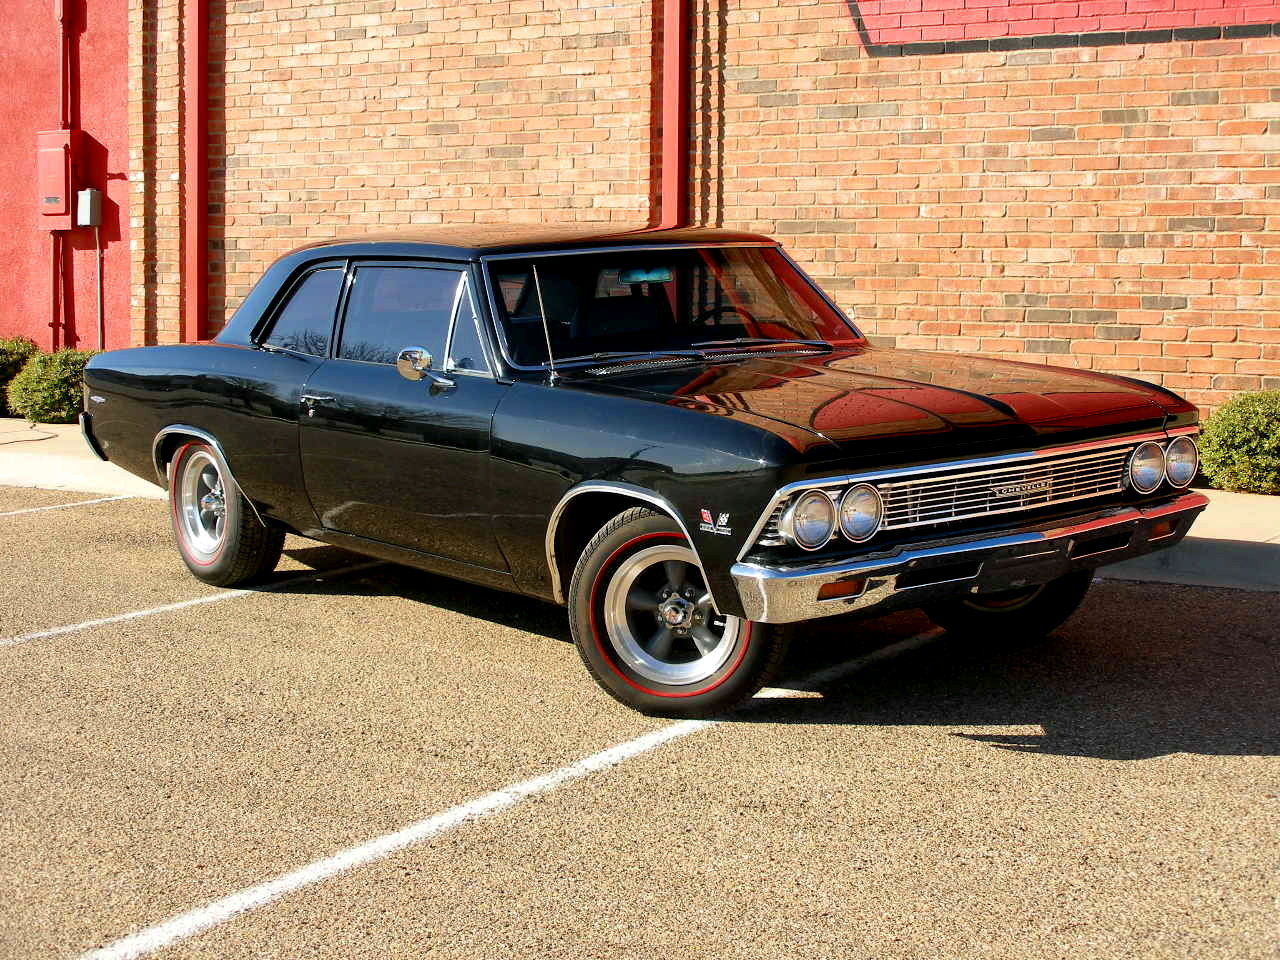 1966 chevrolet chevelle ss picture 103213 car review top speed. Black Bedroom Furniture Sets. Home Design Ideas